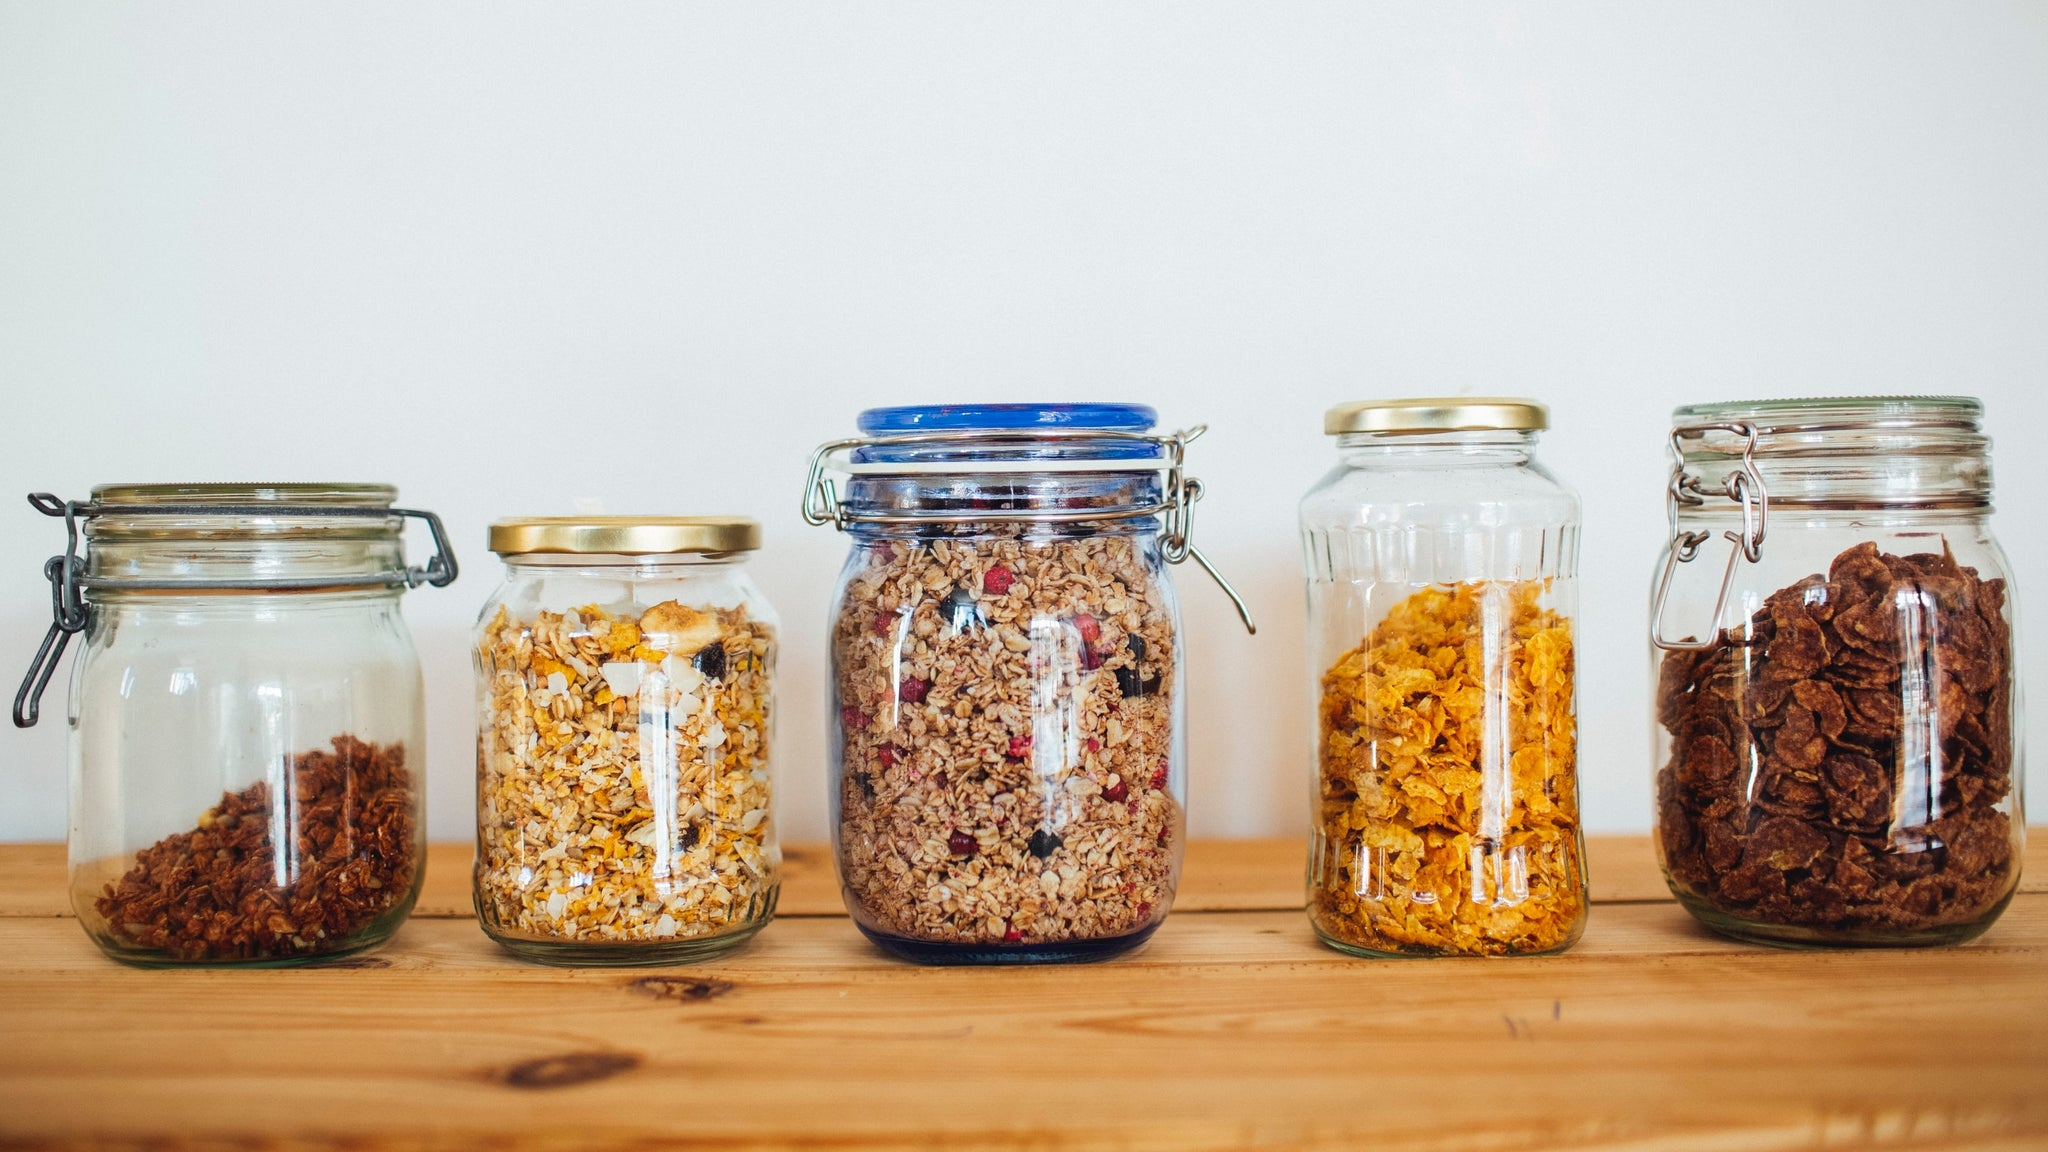 Food Storage Containers: 5 Plastic-Free Alternatives